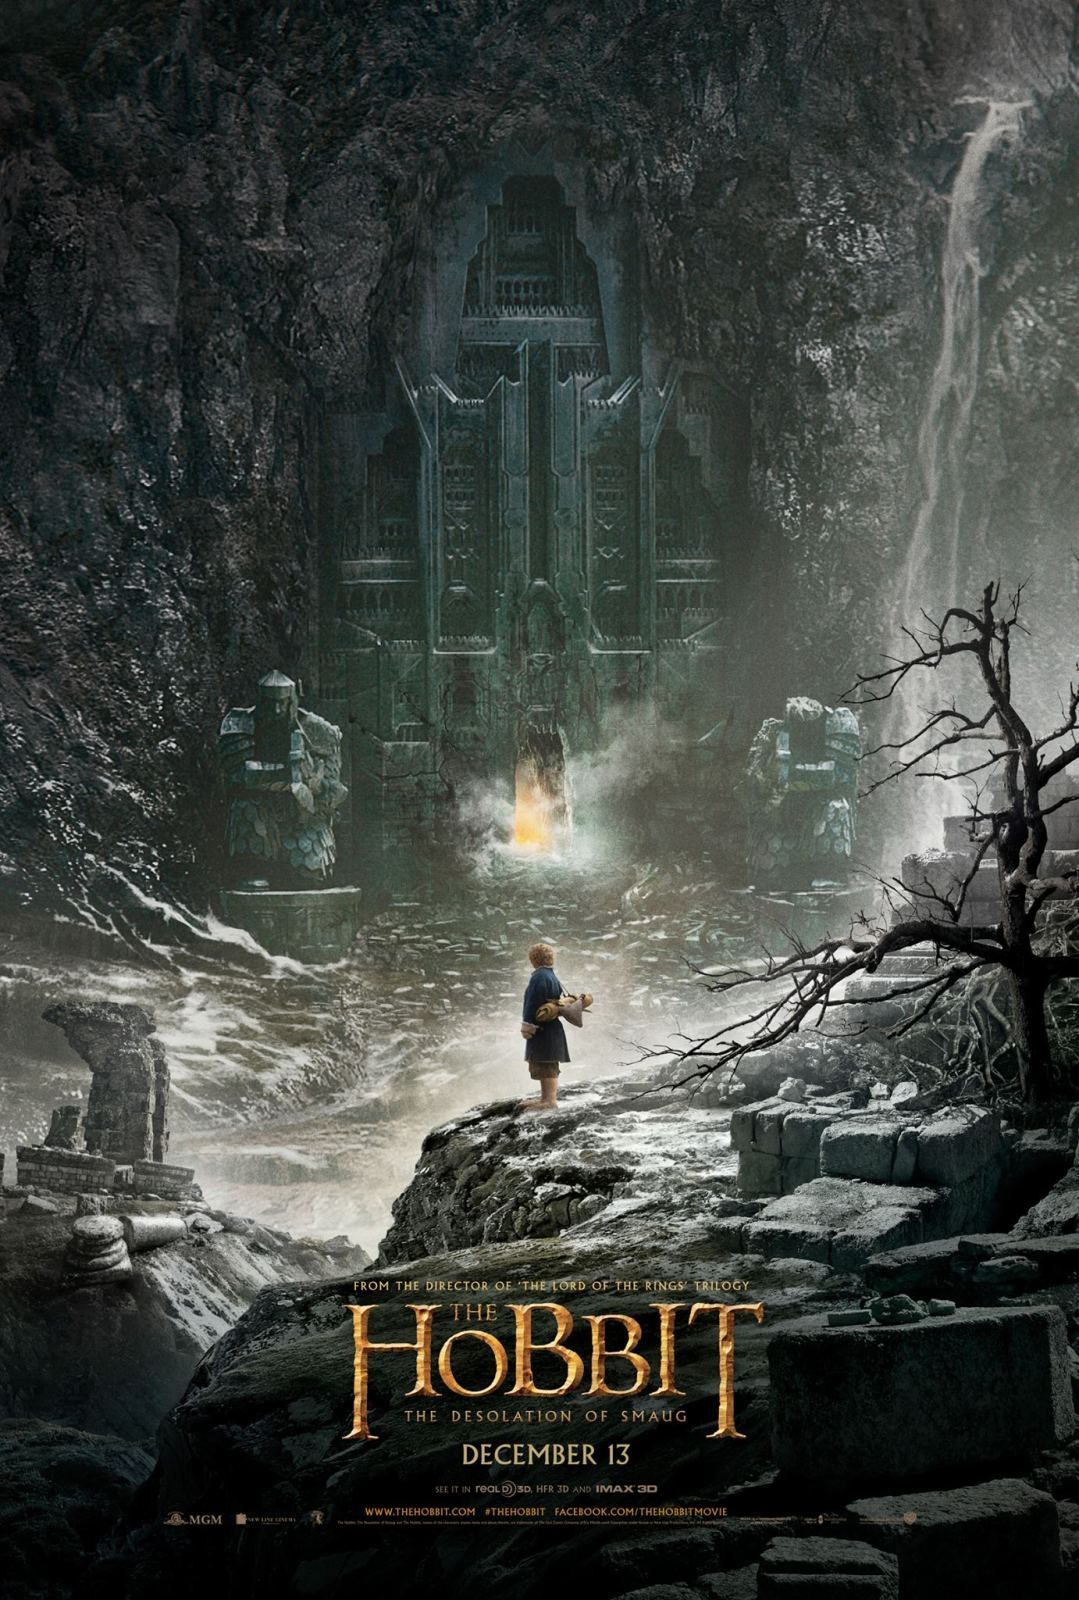 the hobbit: the desolation of smaug http://firewireblog.com/2013/10/01/the-hobbit-the-desolation-of-smaug-trailer/